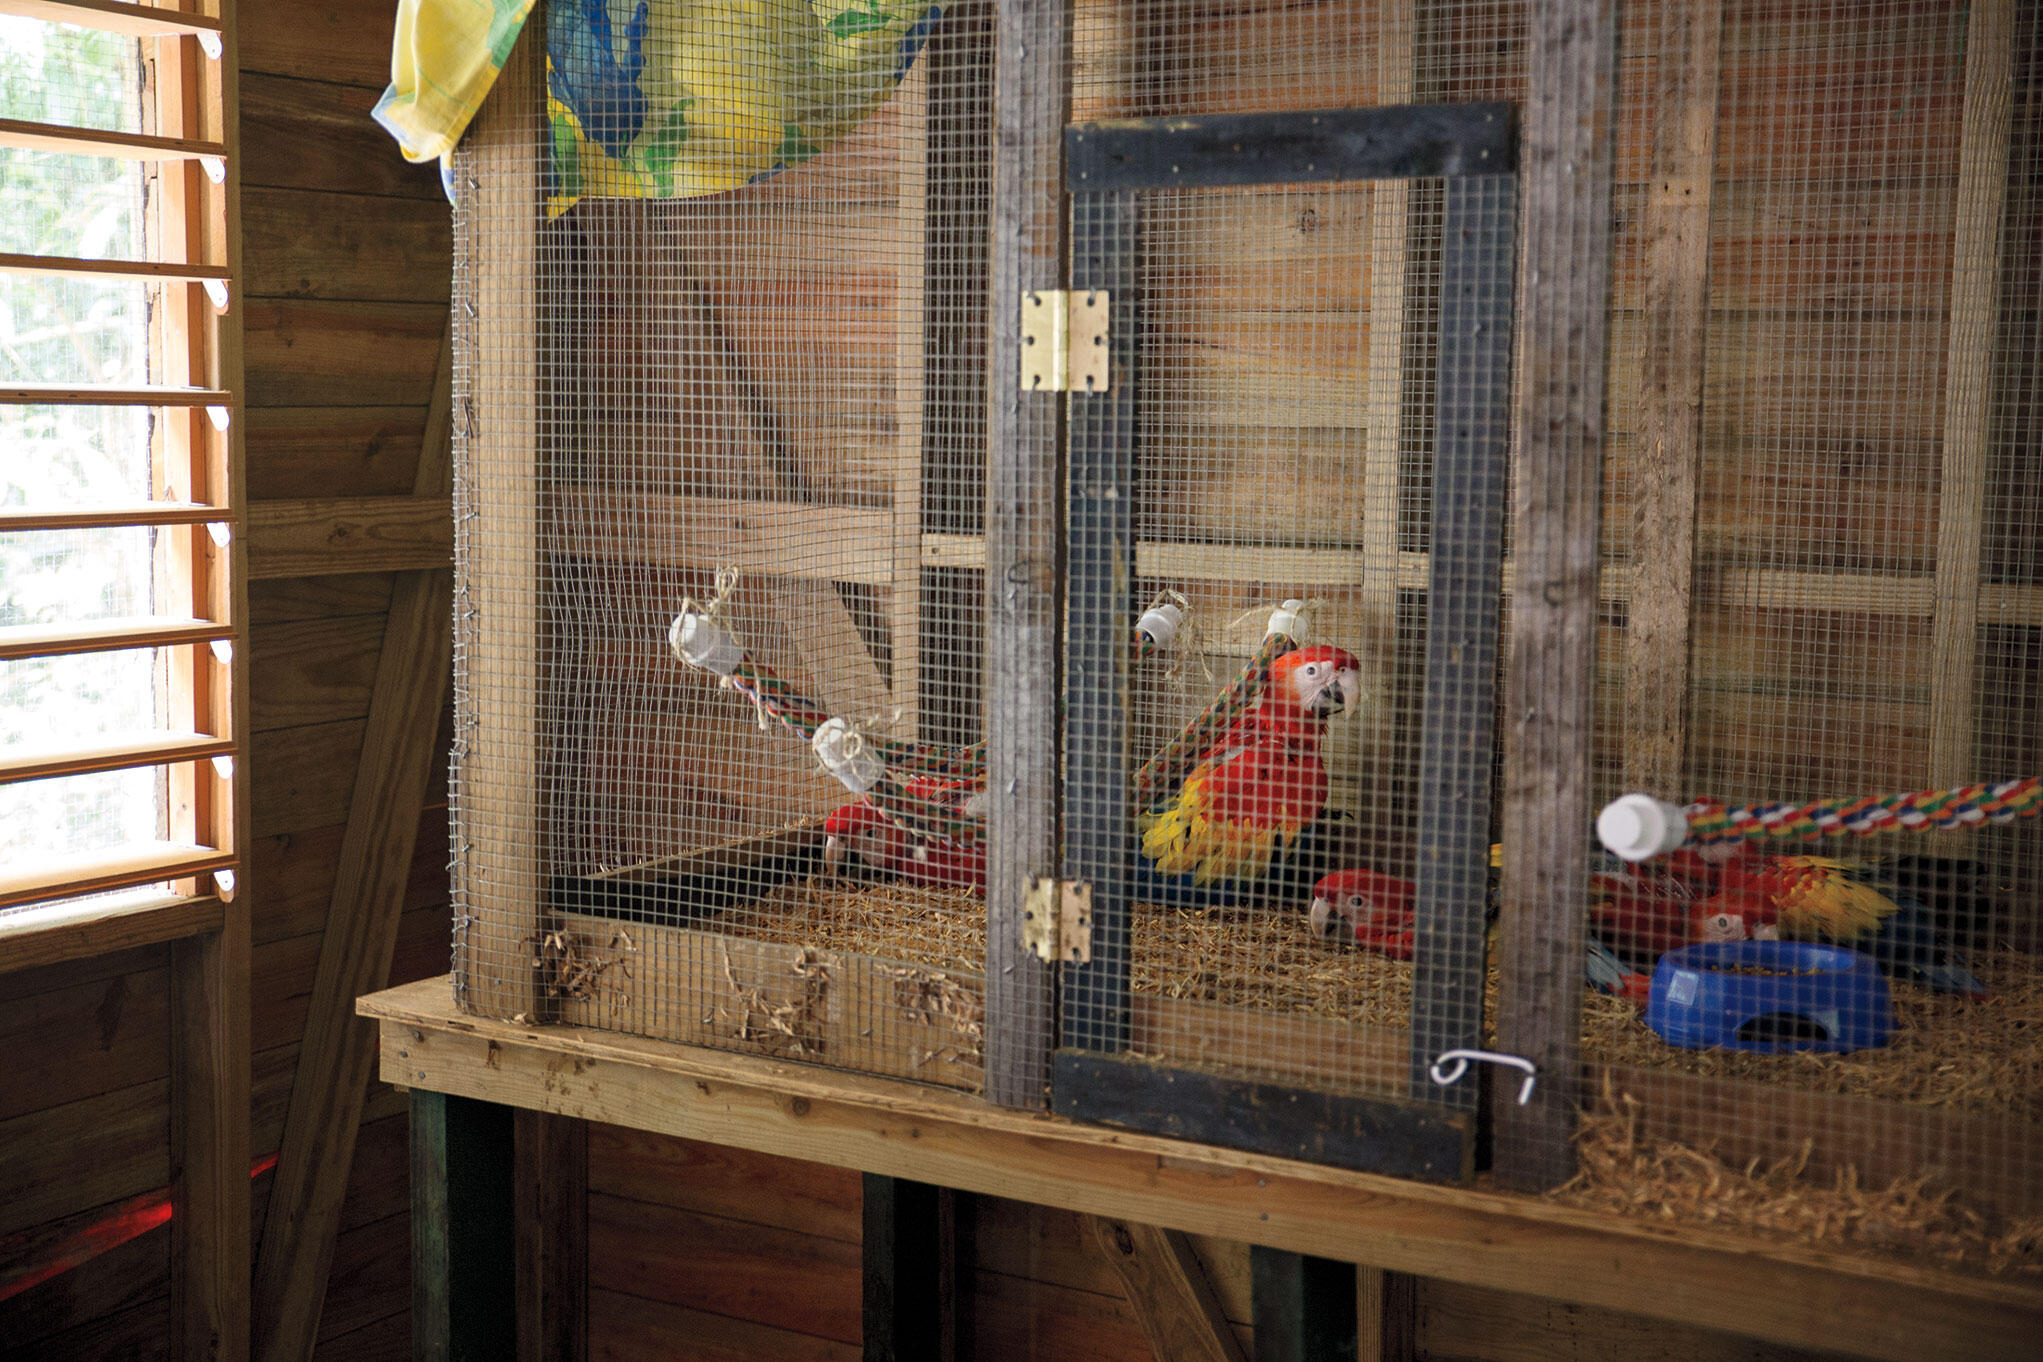 Five rescued Scarlet Macaw chicks sleep off a Tropican Parrot Food lunch in their enclosure. Camilla Cerea/Audubon